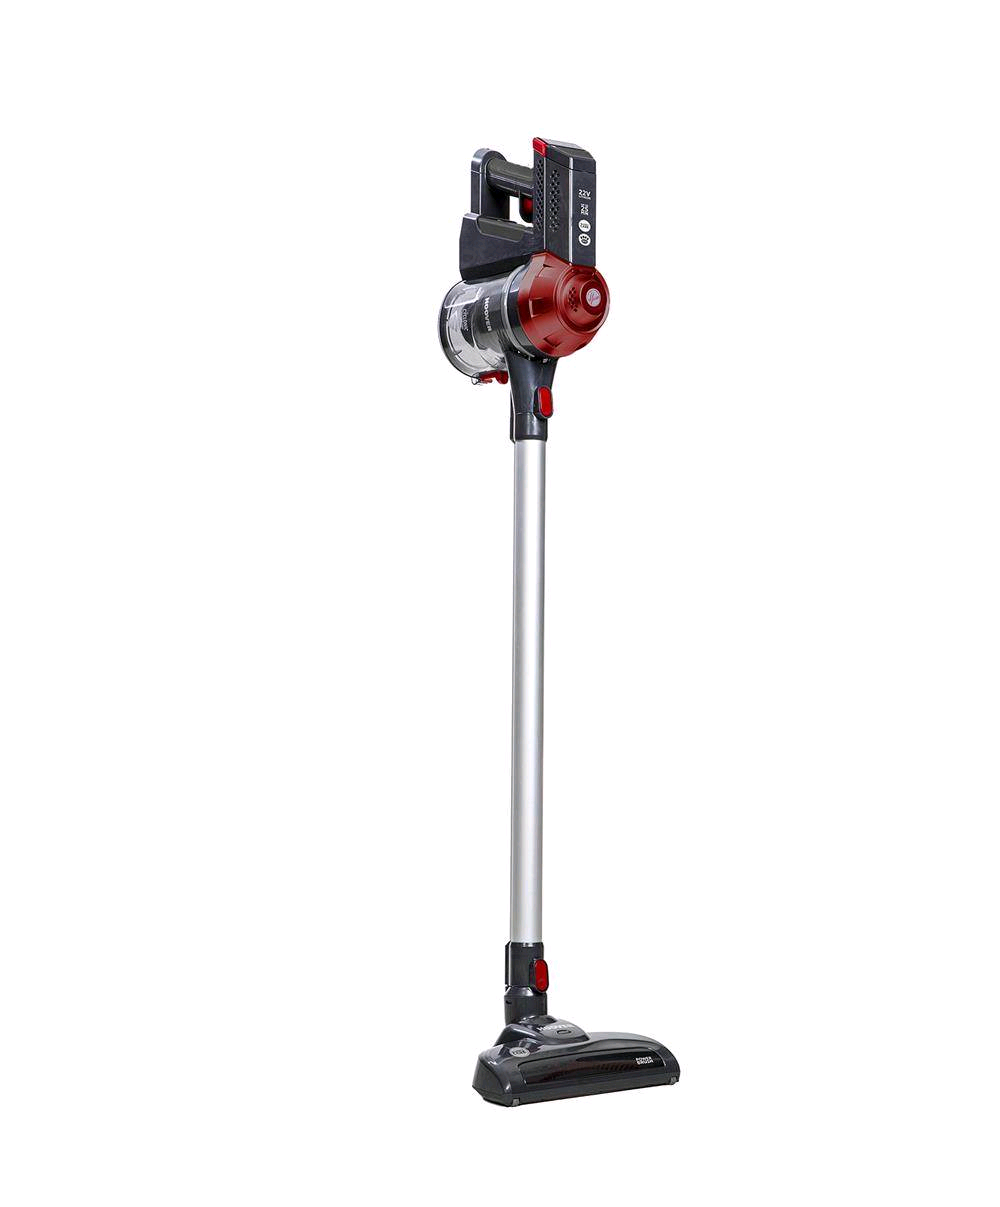 Hoover Freedom Cordless Vacuum Cleaner 22v Lithium PET PLUS Version